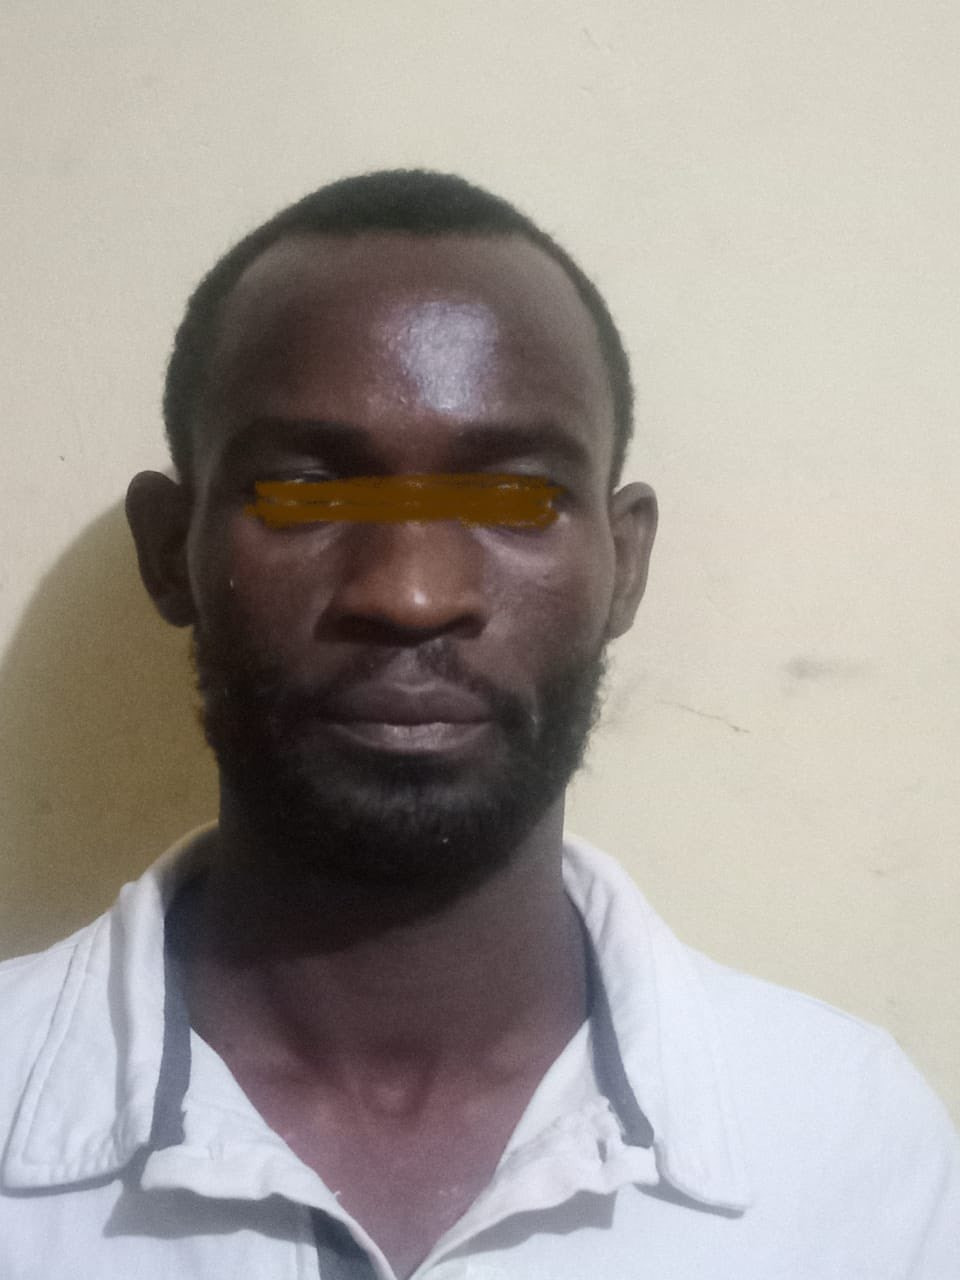 Kenyan man who allegedly killed his wife arrested while fleeing to Tanzania